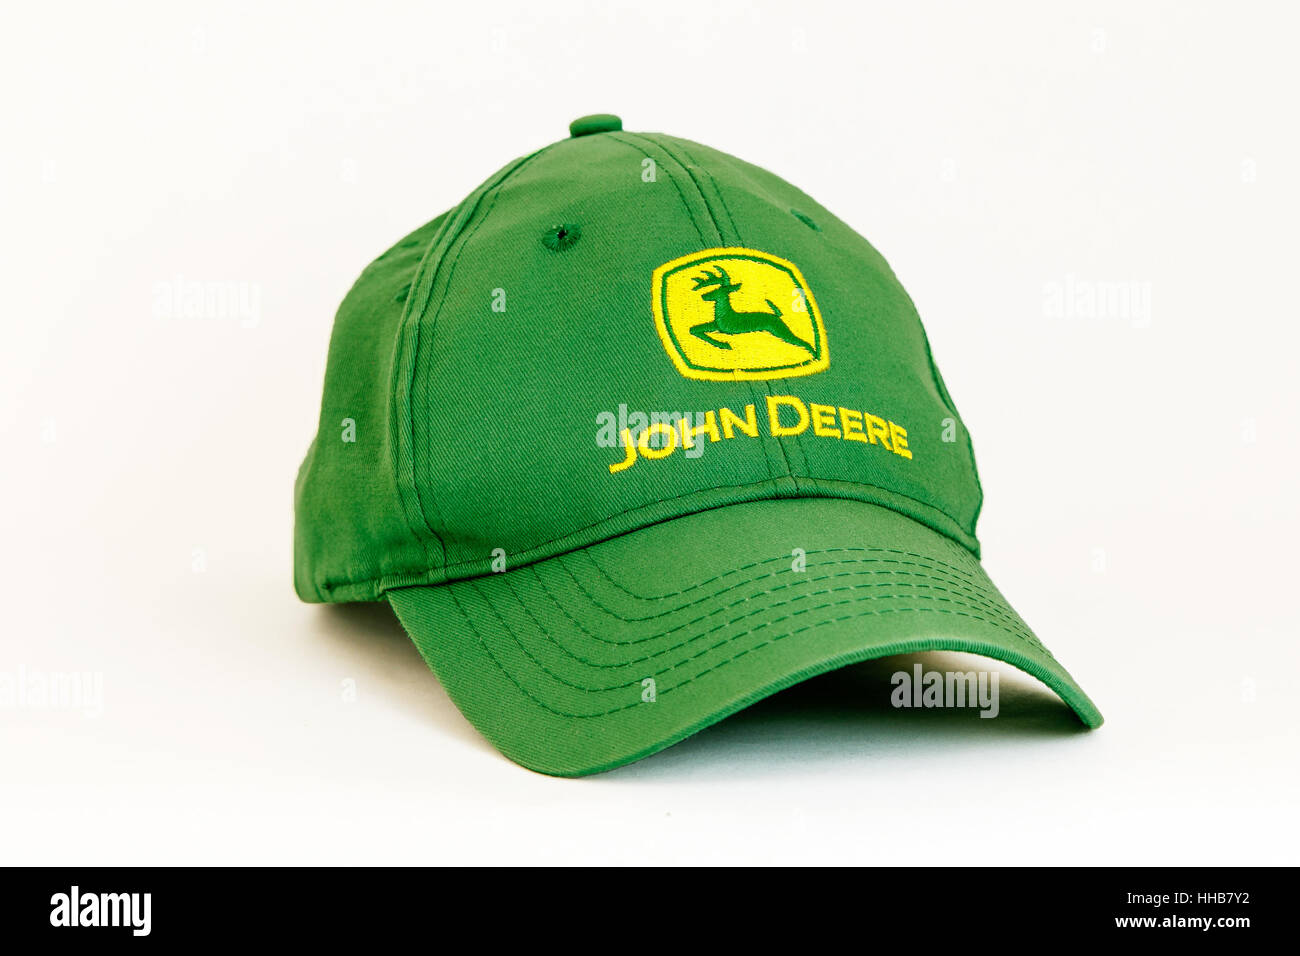 A John Deere branded green baseball cap is seen against white background. -  Stock Image 6a198b94e75